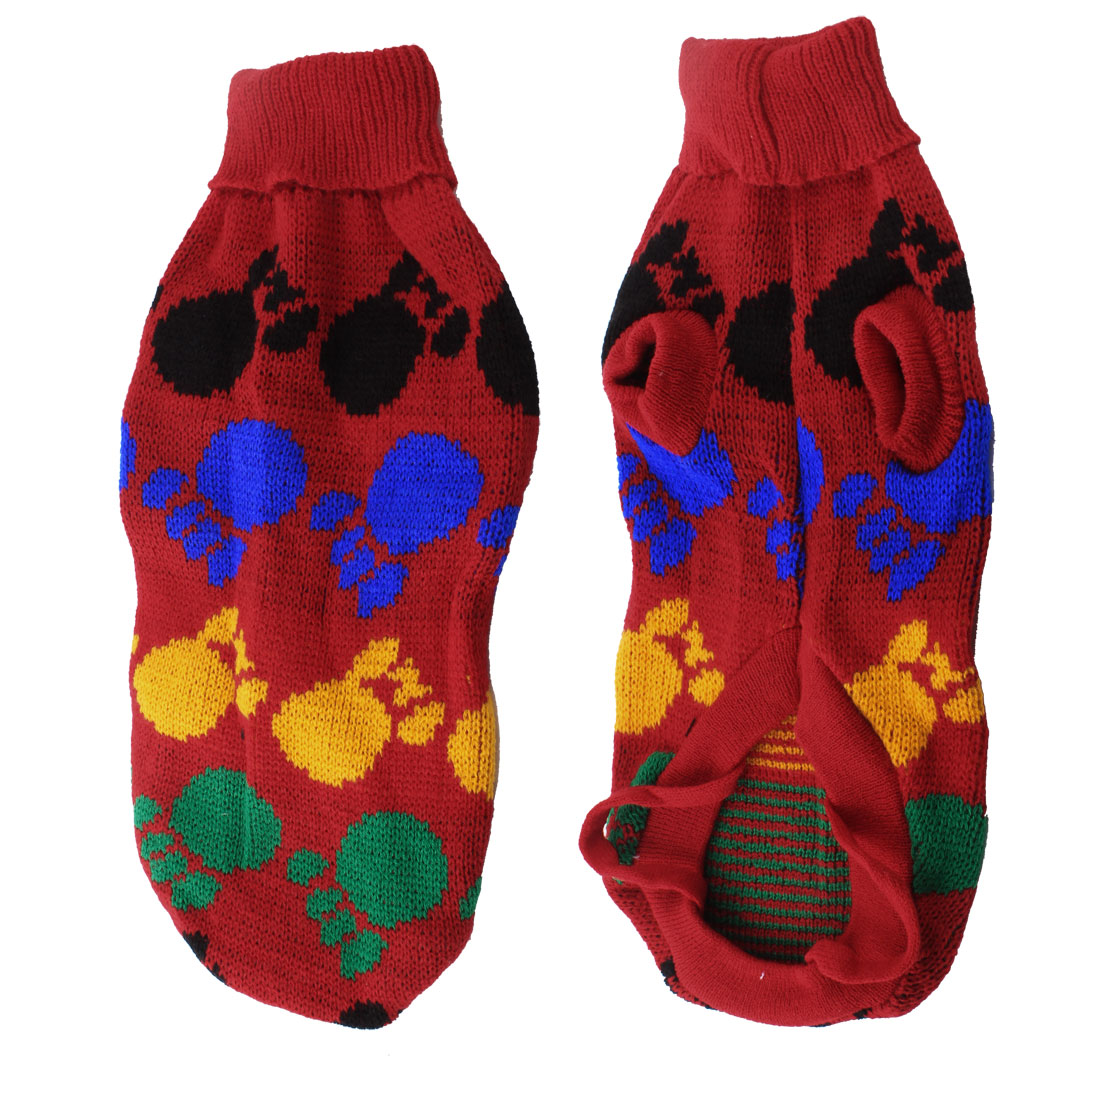 Warm Turtleneck Paw Printed Knitted Dog Winter Sweater Clothing Size S